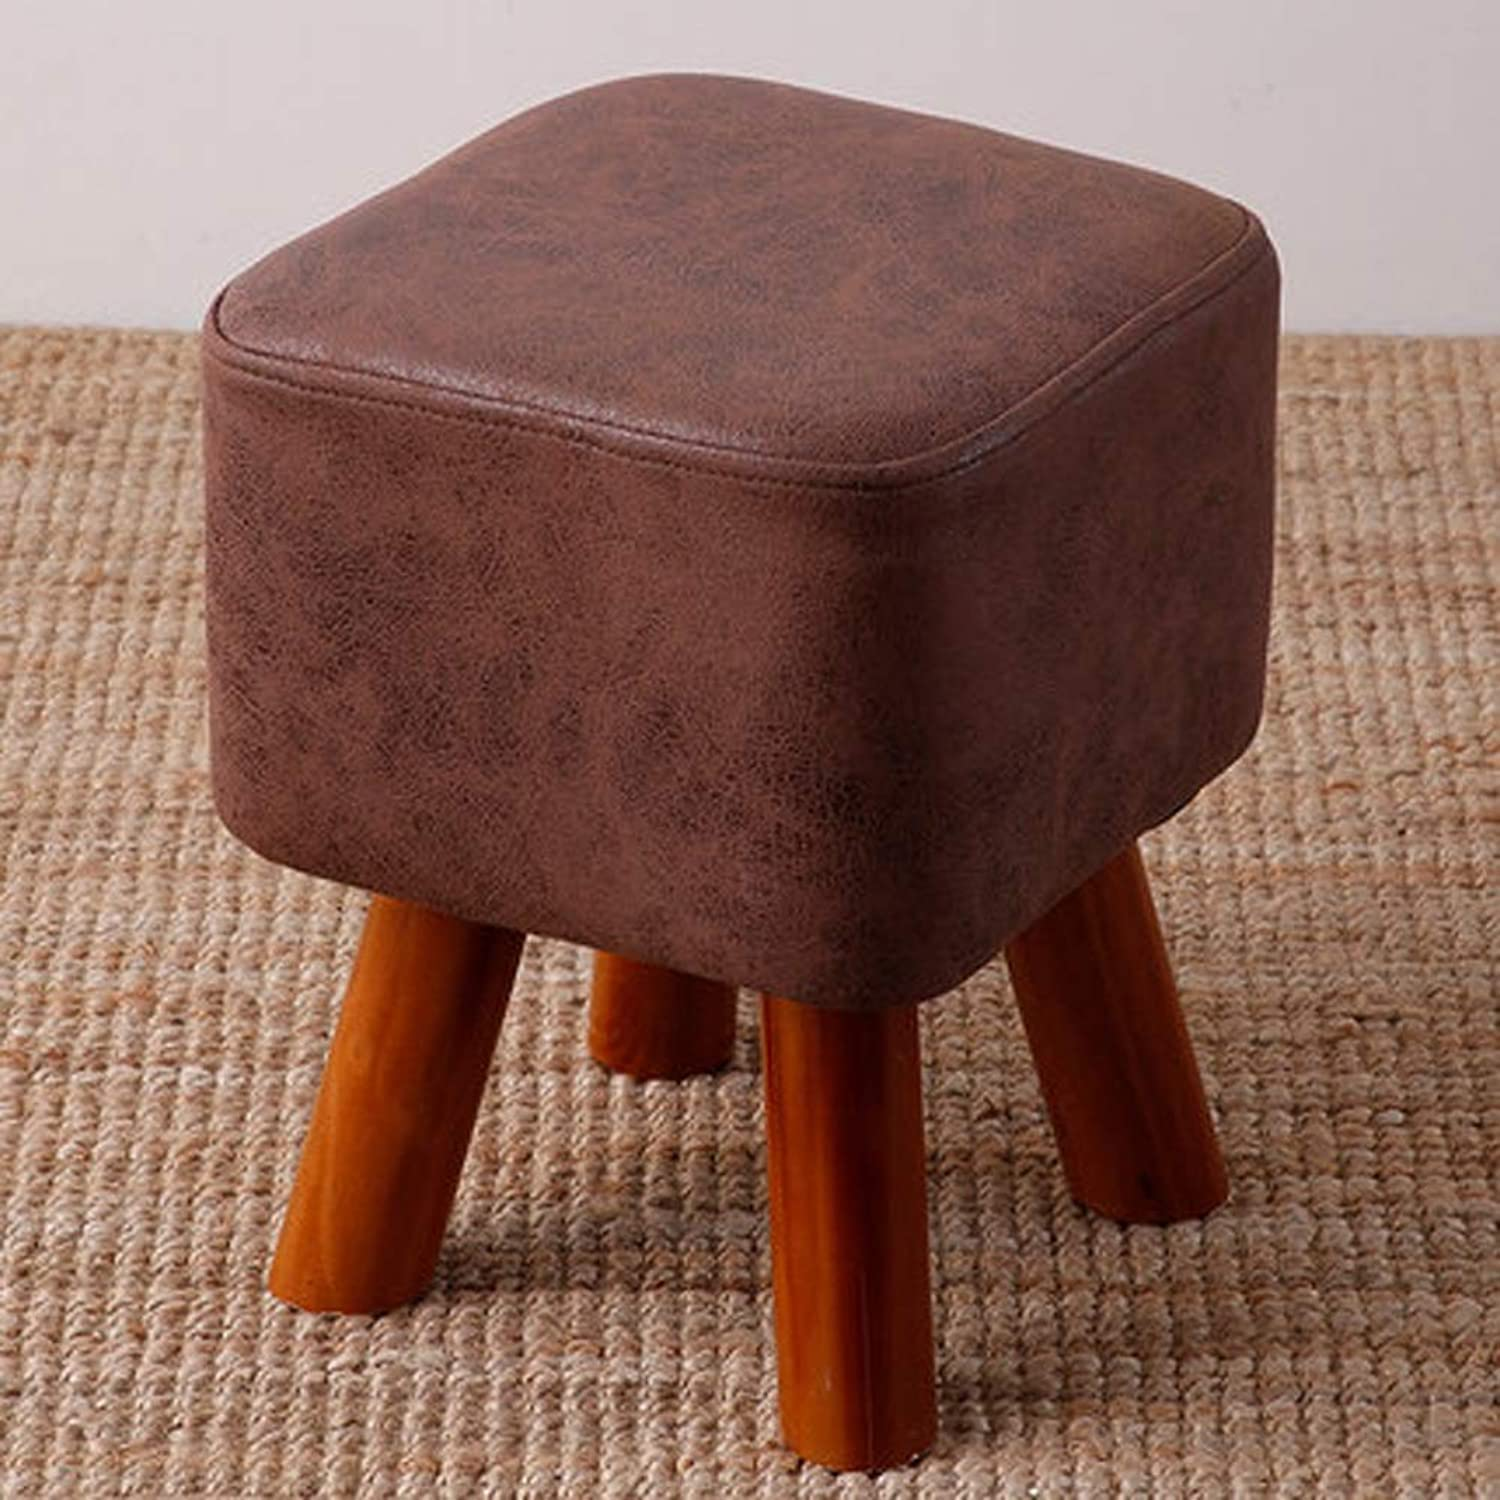 AINIYF Solid Wood Heightening Stool Creative Living Room Change shoes Stool Fashion Adult Stool Fabric Sofa Bench Home Bench Square Footstools 4 Leg Stands-34x28cm (color   C)